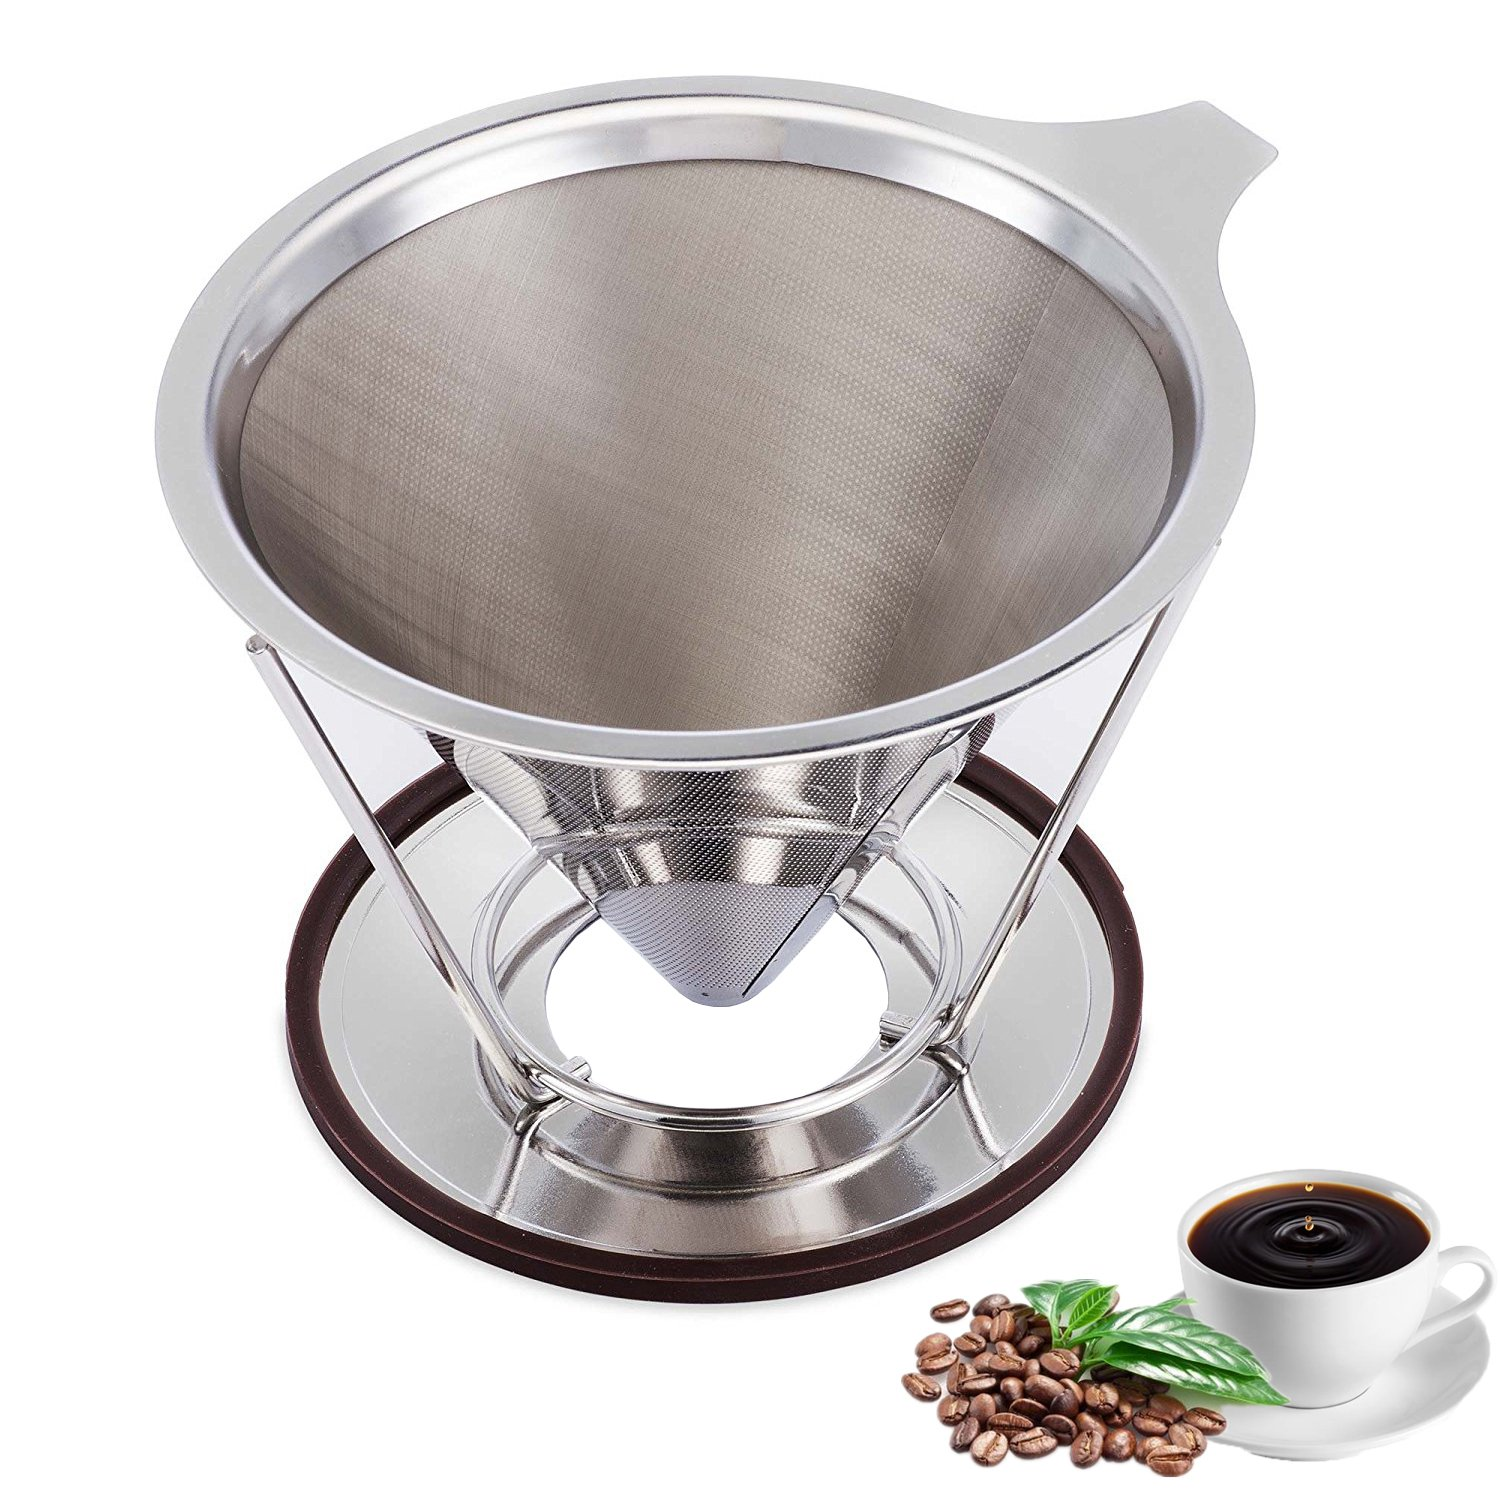 ACEHOOM Pour Over Coffee Dripper Clever Coffee Dripper Reusable Coffee Filter Single Cup Pour Over Coffee Maker Stainless Steel Permanent Drip Cone 1-4 Cup for Osaka Chemex Carafes with Stand Holder